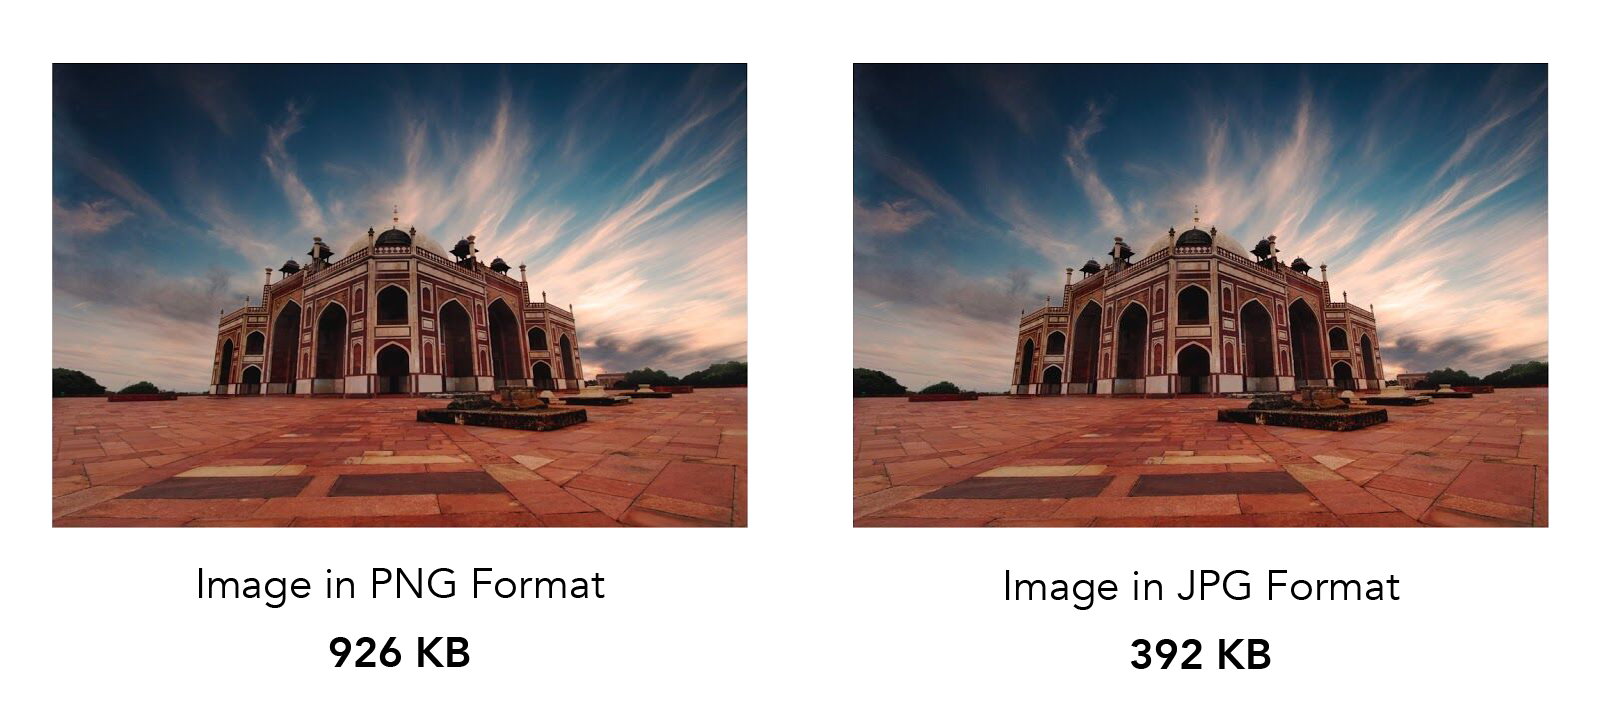 ImageKit.io: Image Optimization That Plugs Into Your Infrastructure